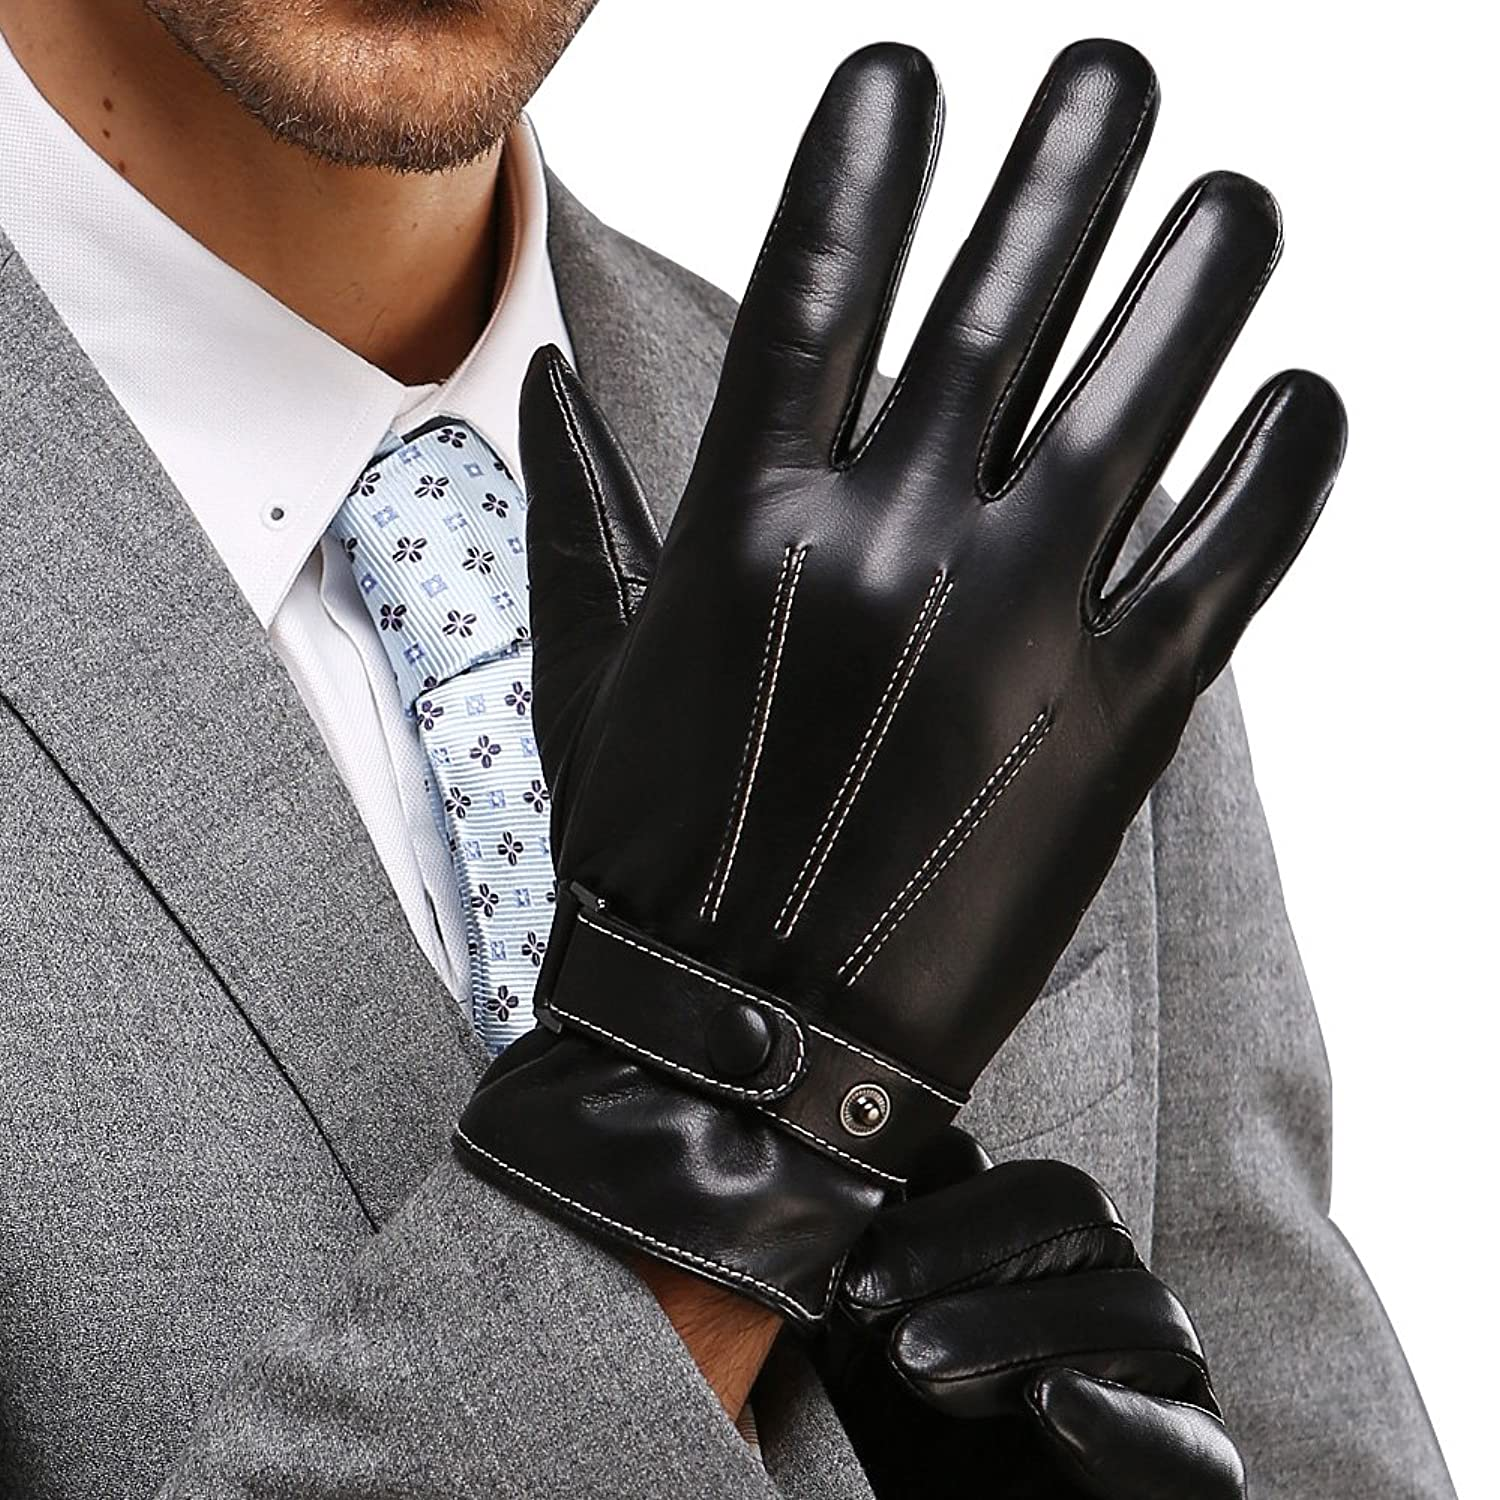 Best winter mens leather gloves made of australia lambskin drive work motorcycle riding cycling fleece lining